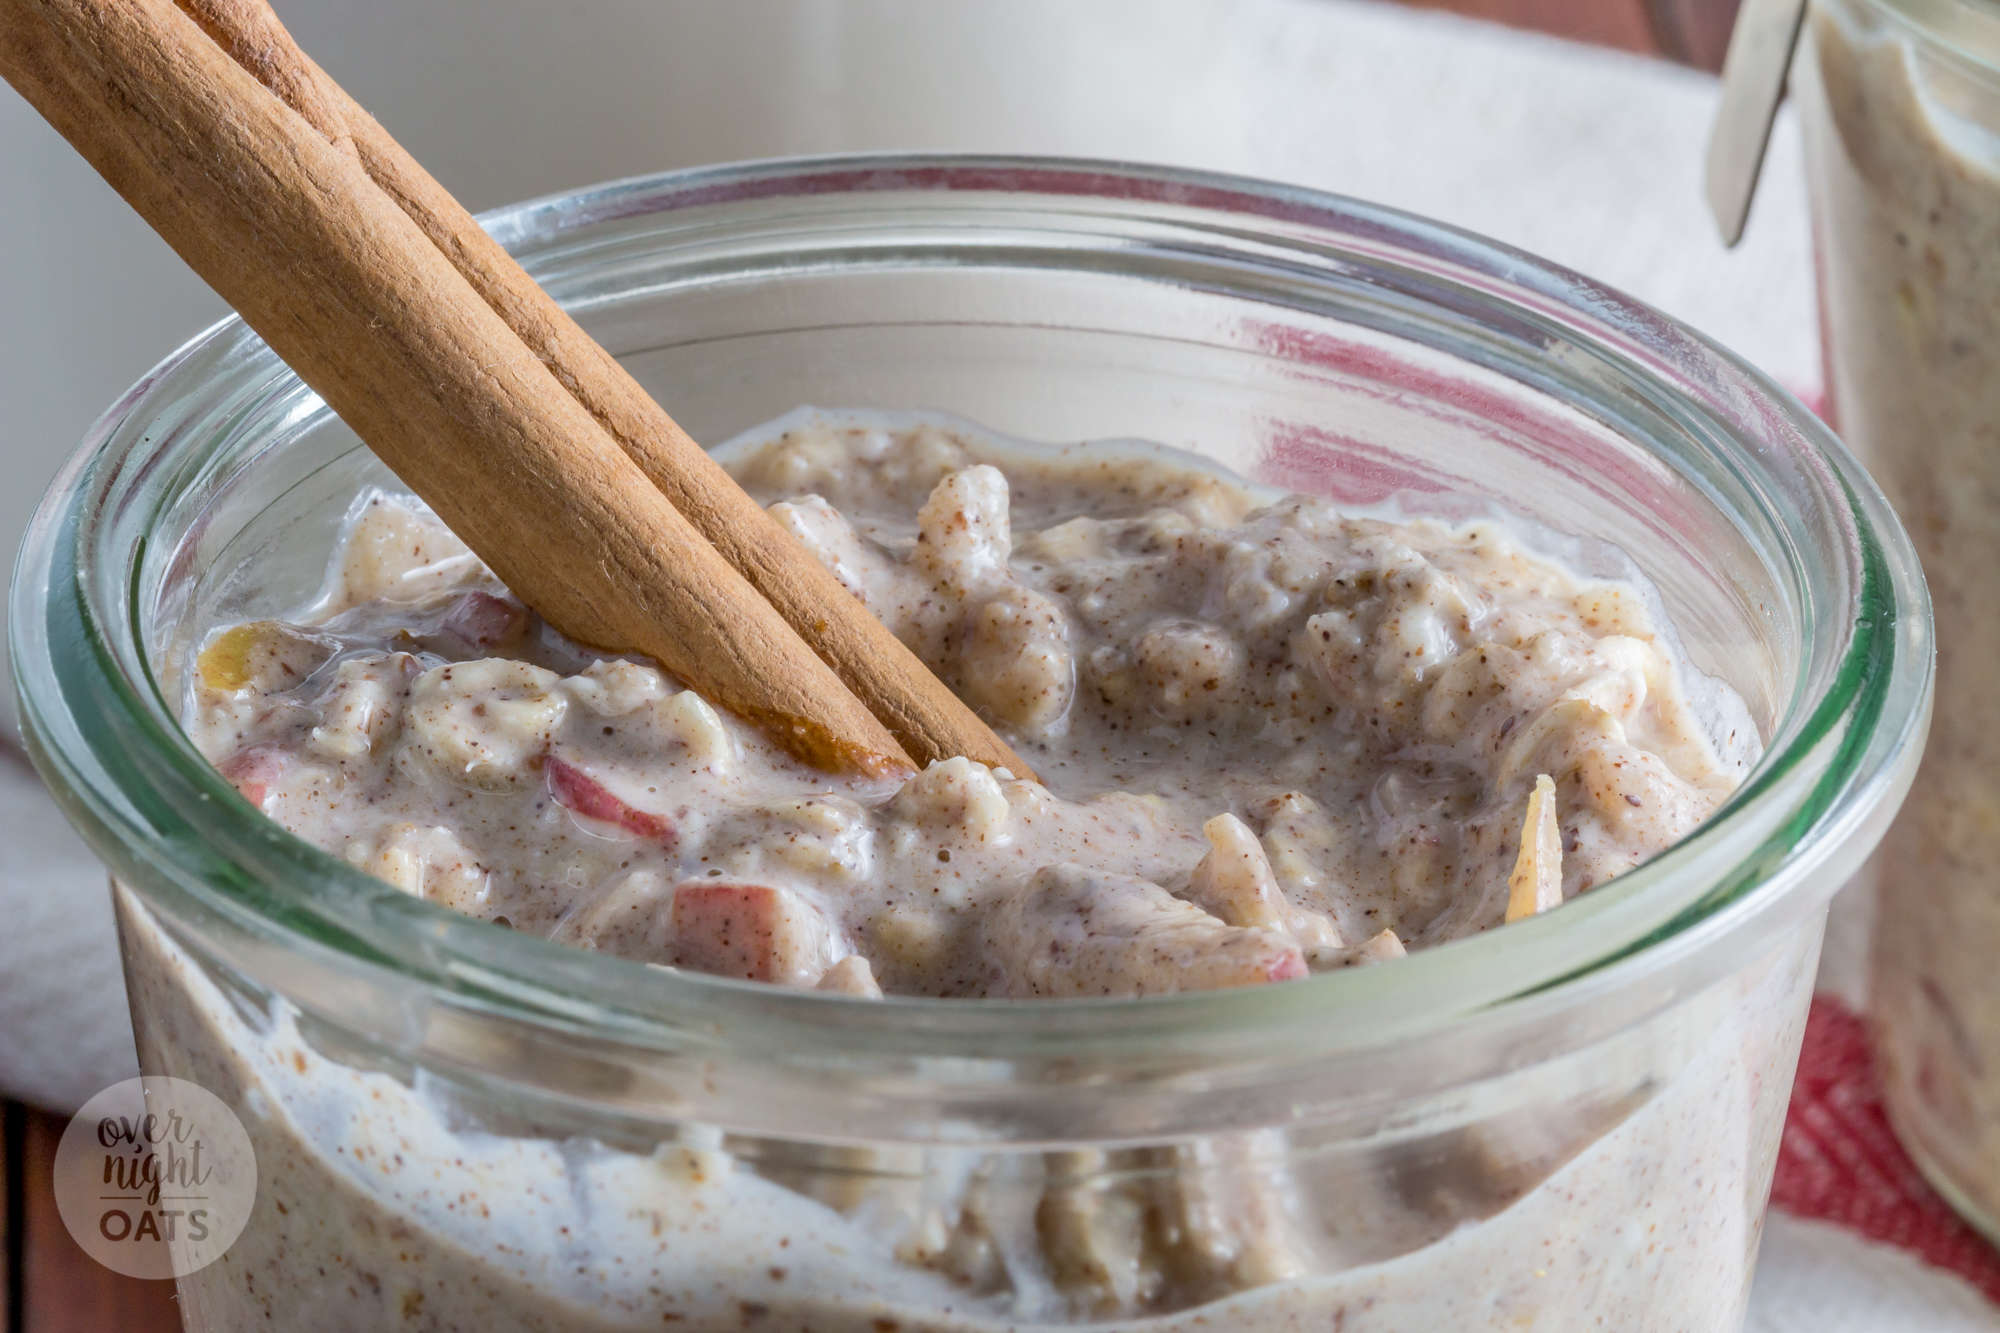 Apple Cinnamon and Nut Butter Overnight Oats